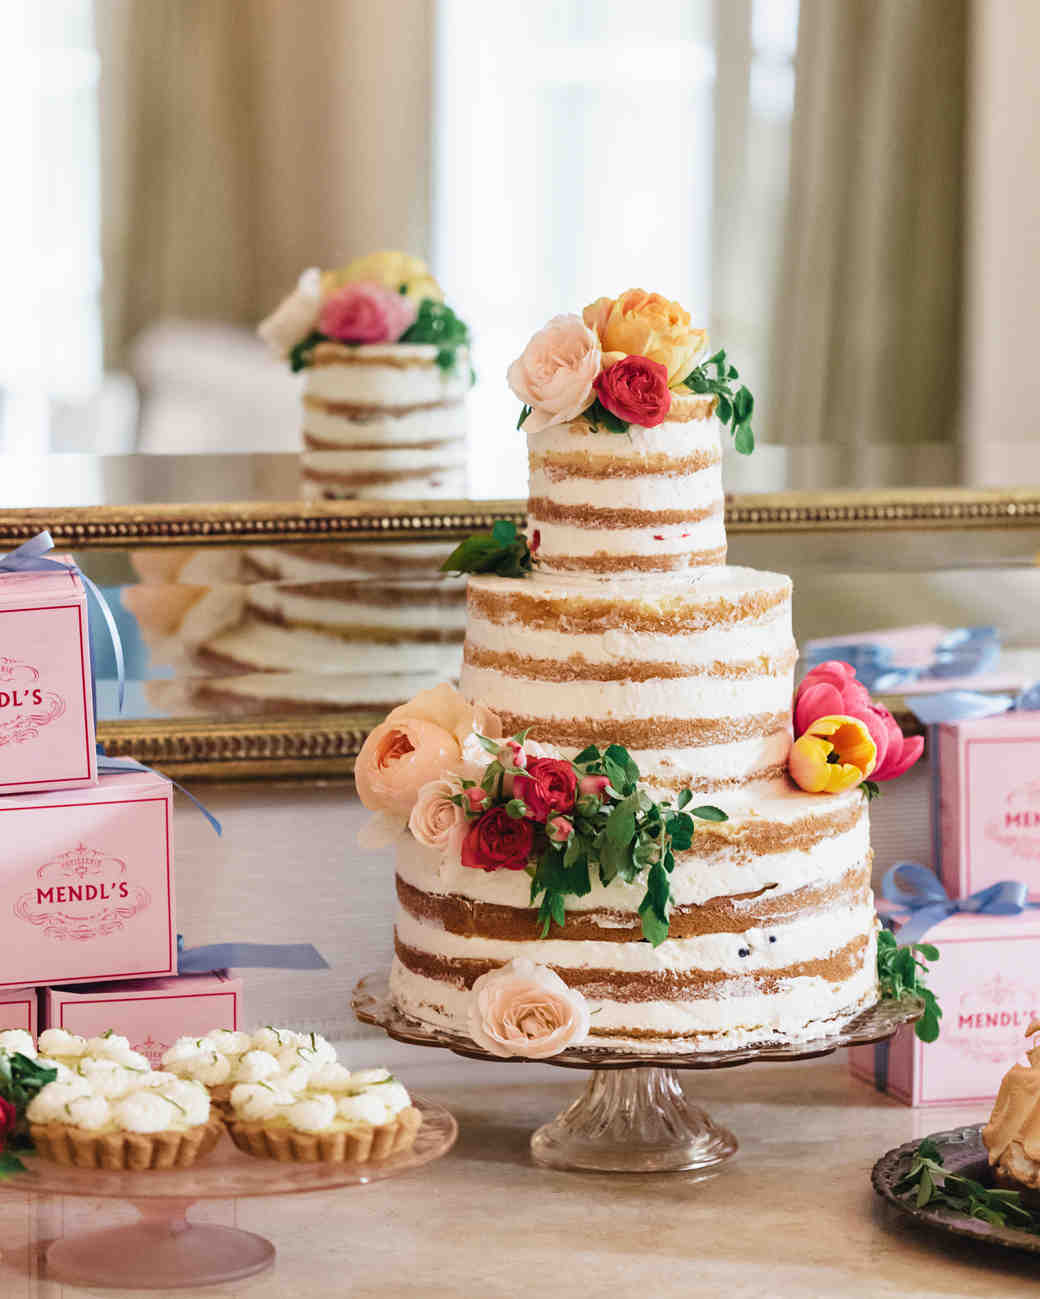 Comfortable Wedding Cakes With Cupcakes Tiny Wedding Cake Pops Clean Disney Wedding Cake Toppers Peacock Wedding Cake Youthful Wedding Cakes Orlando GreenStar Wars Wedding Cake Toppers 44 Naked Cakes For Your Wedding | Martha Stewart Weddings